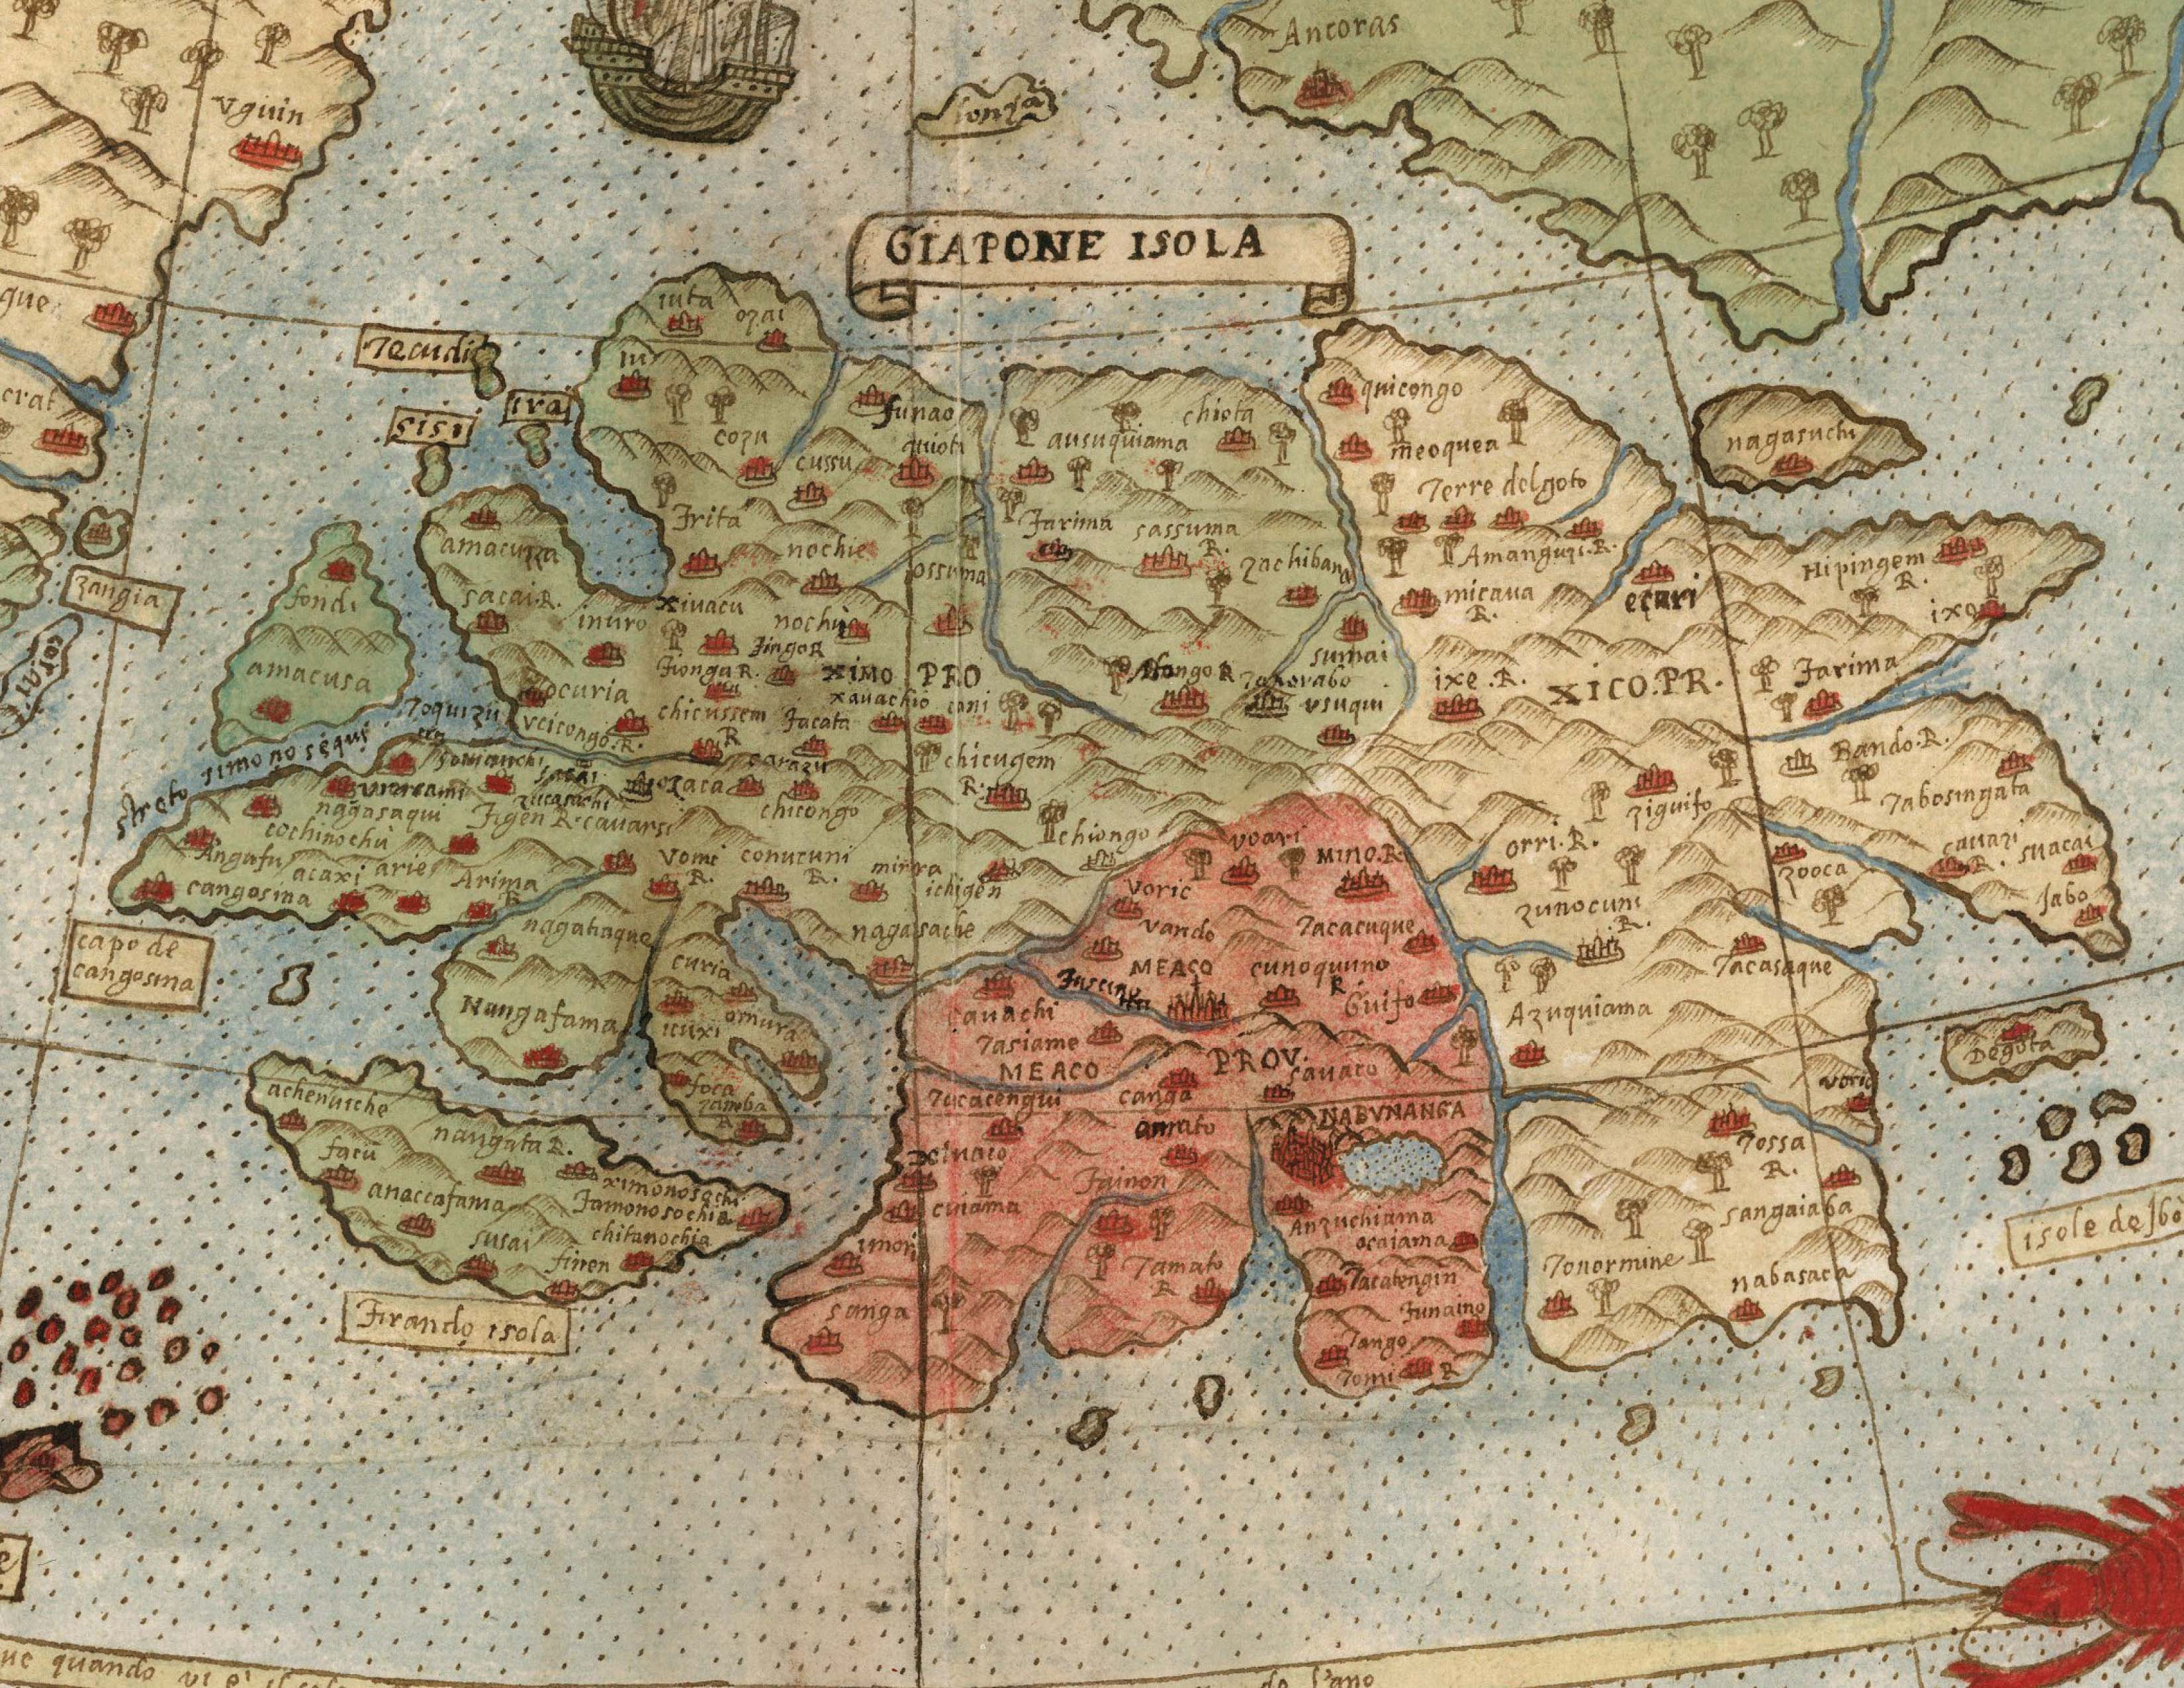 David Rumsey Historical Map Collection   Largest Early World Map     Monte s depiction of Japan is advanced for the time  probably drawing on  information provided to him by the Japanese Embassy to Milan and Italy in  1585